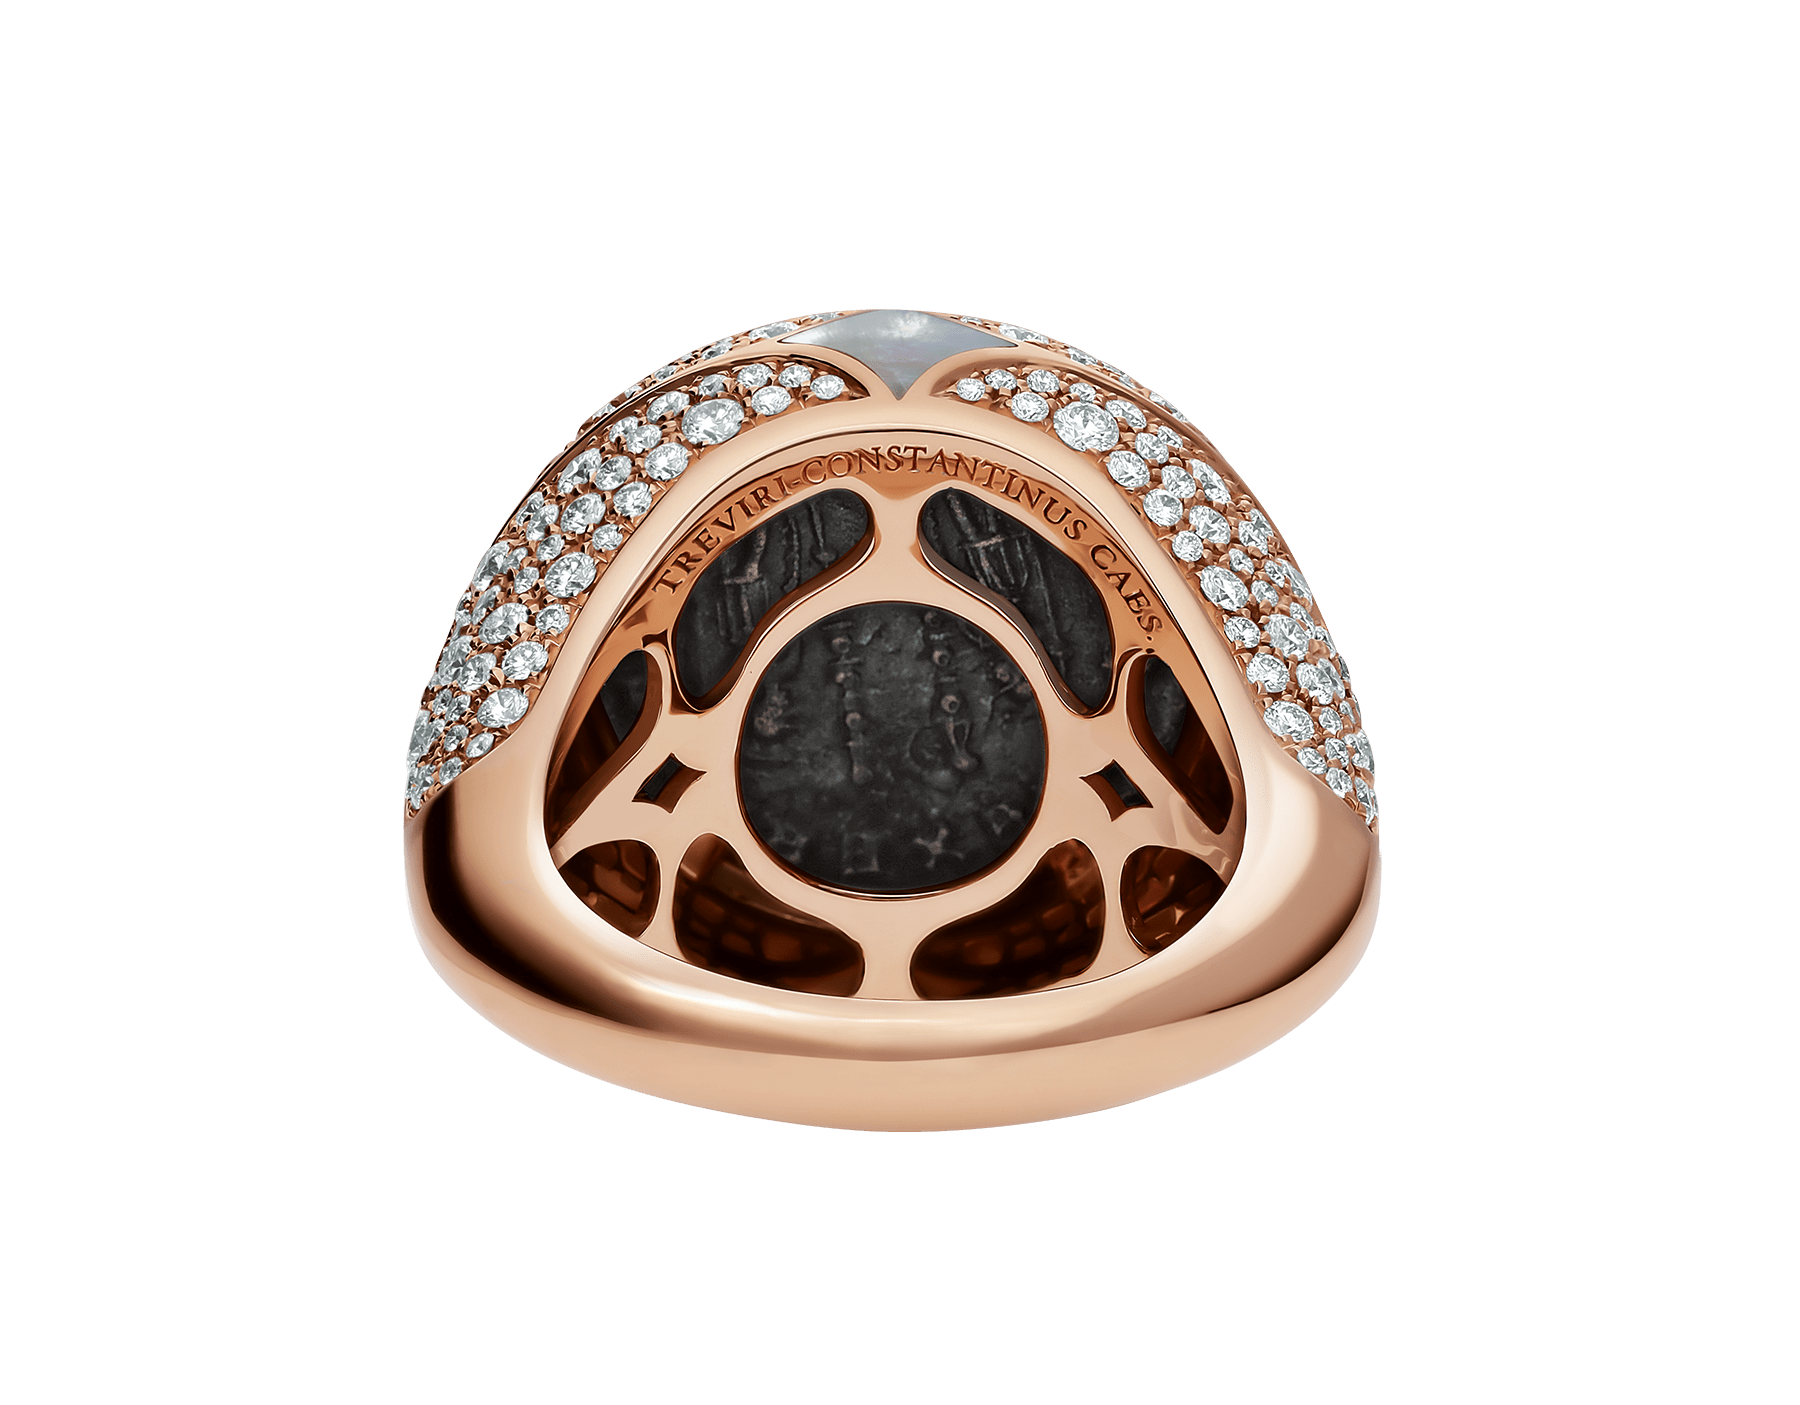 Monete 18 kt rose gold ring set with an ancient coin, mother-of-pearl elements and pavé diamonds AN858424 image 4